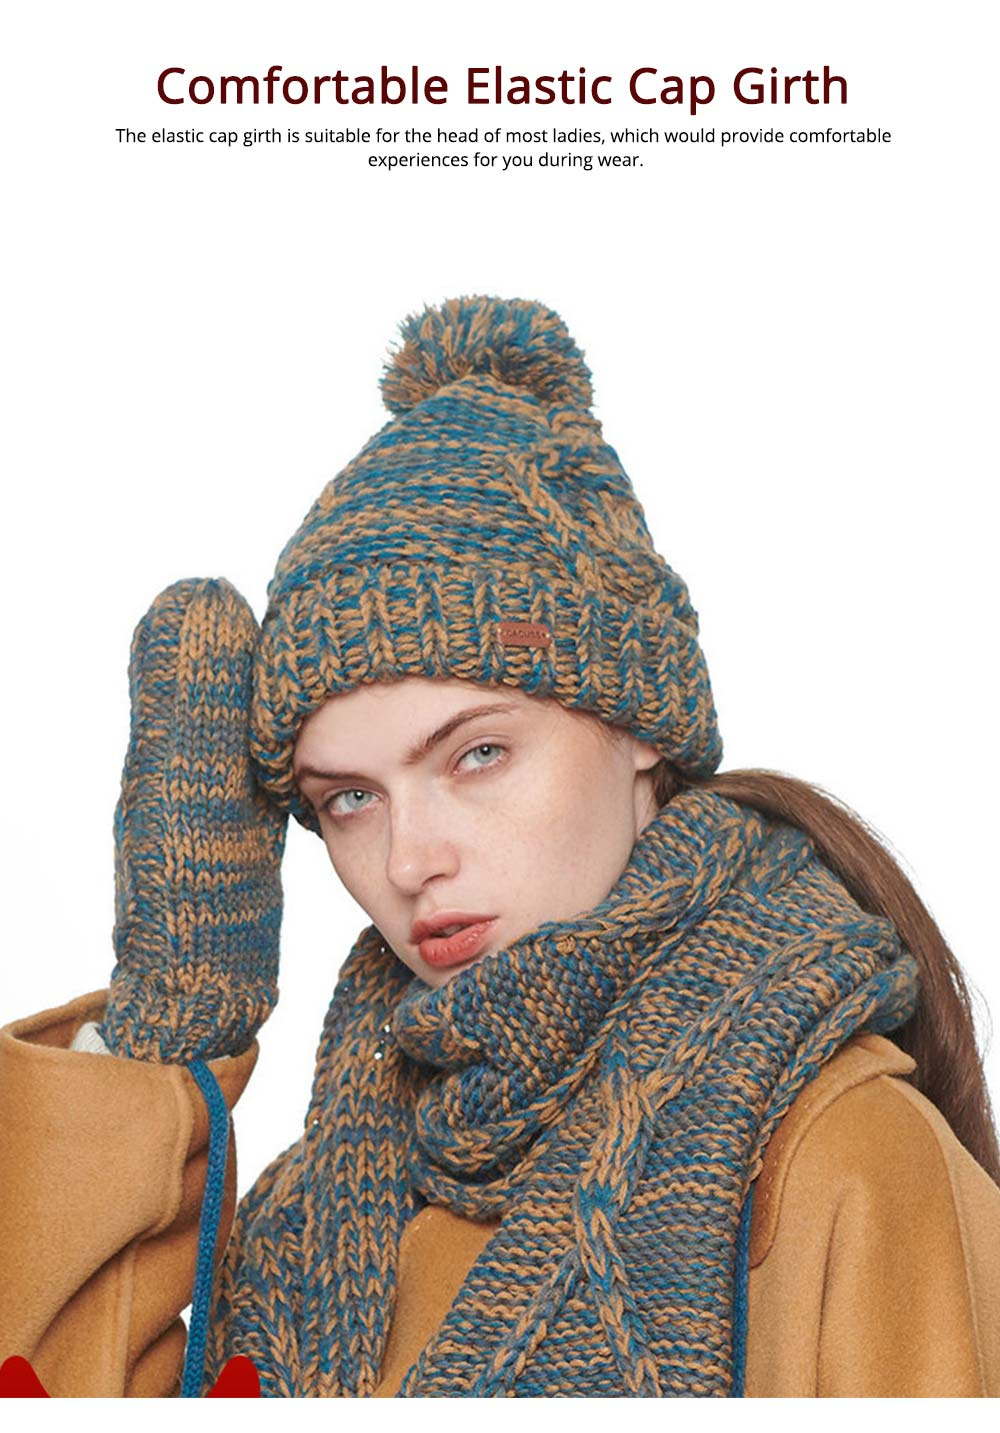 Winter Accessories for Ladies Colorful Knitted Scarf Hat Gloves Suit with Wool Ball Decoration Thicken Warm Autumn Winter 3 PCS Set  2